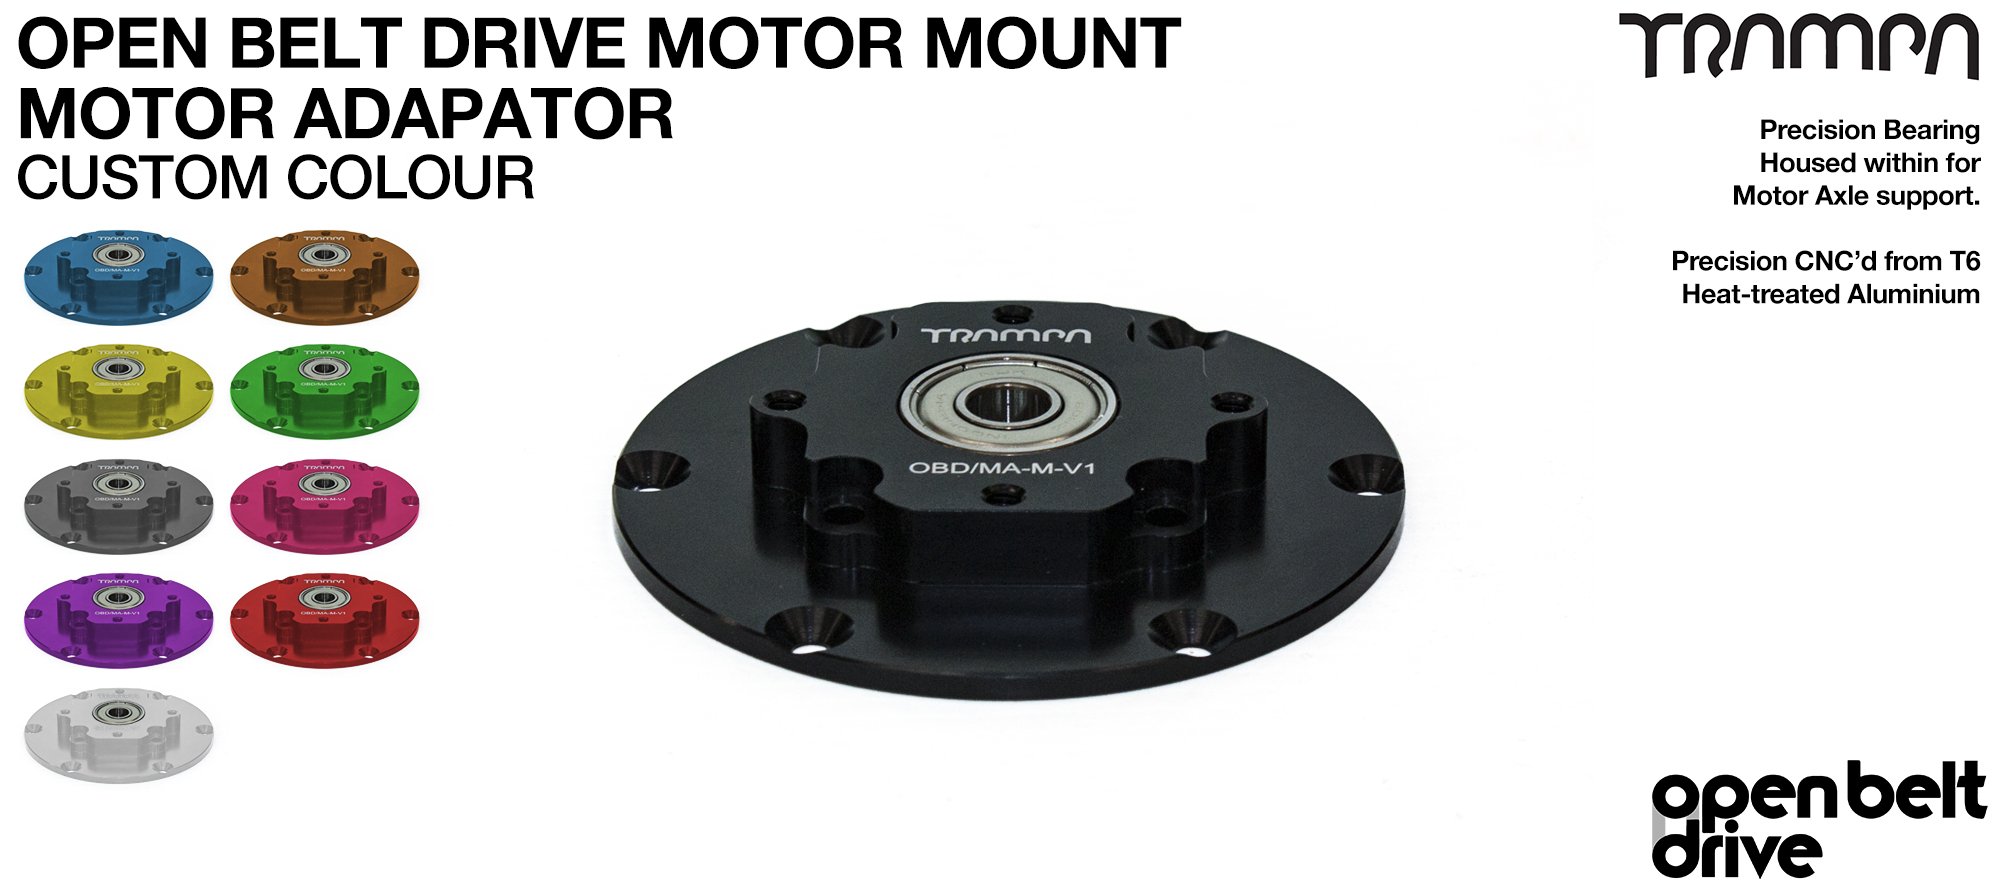 Open Belt Drive Motor Adaptor with Housed Bearing Connects with Both the 66 & the 76 Tooth Motor Mounts